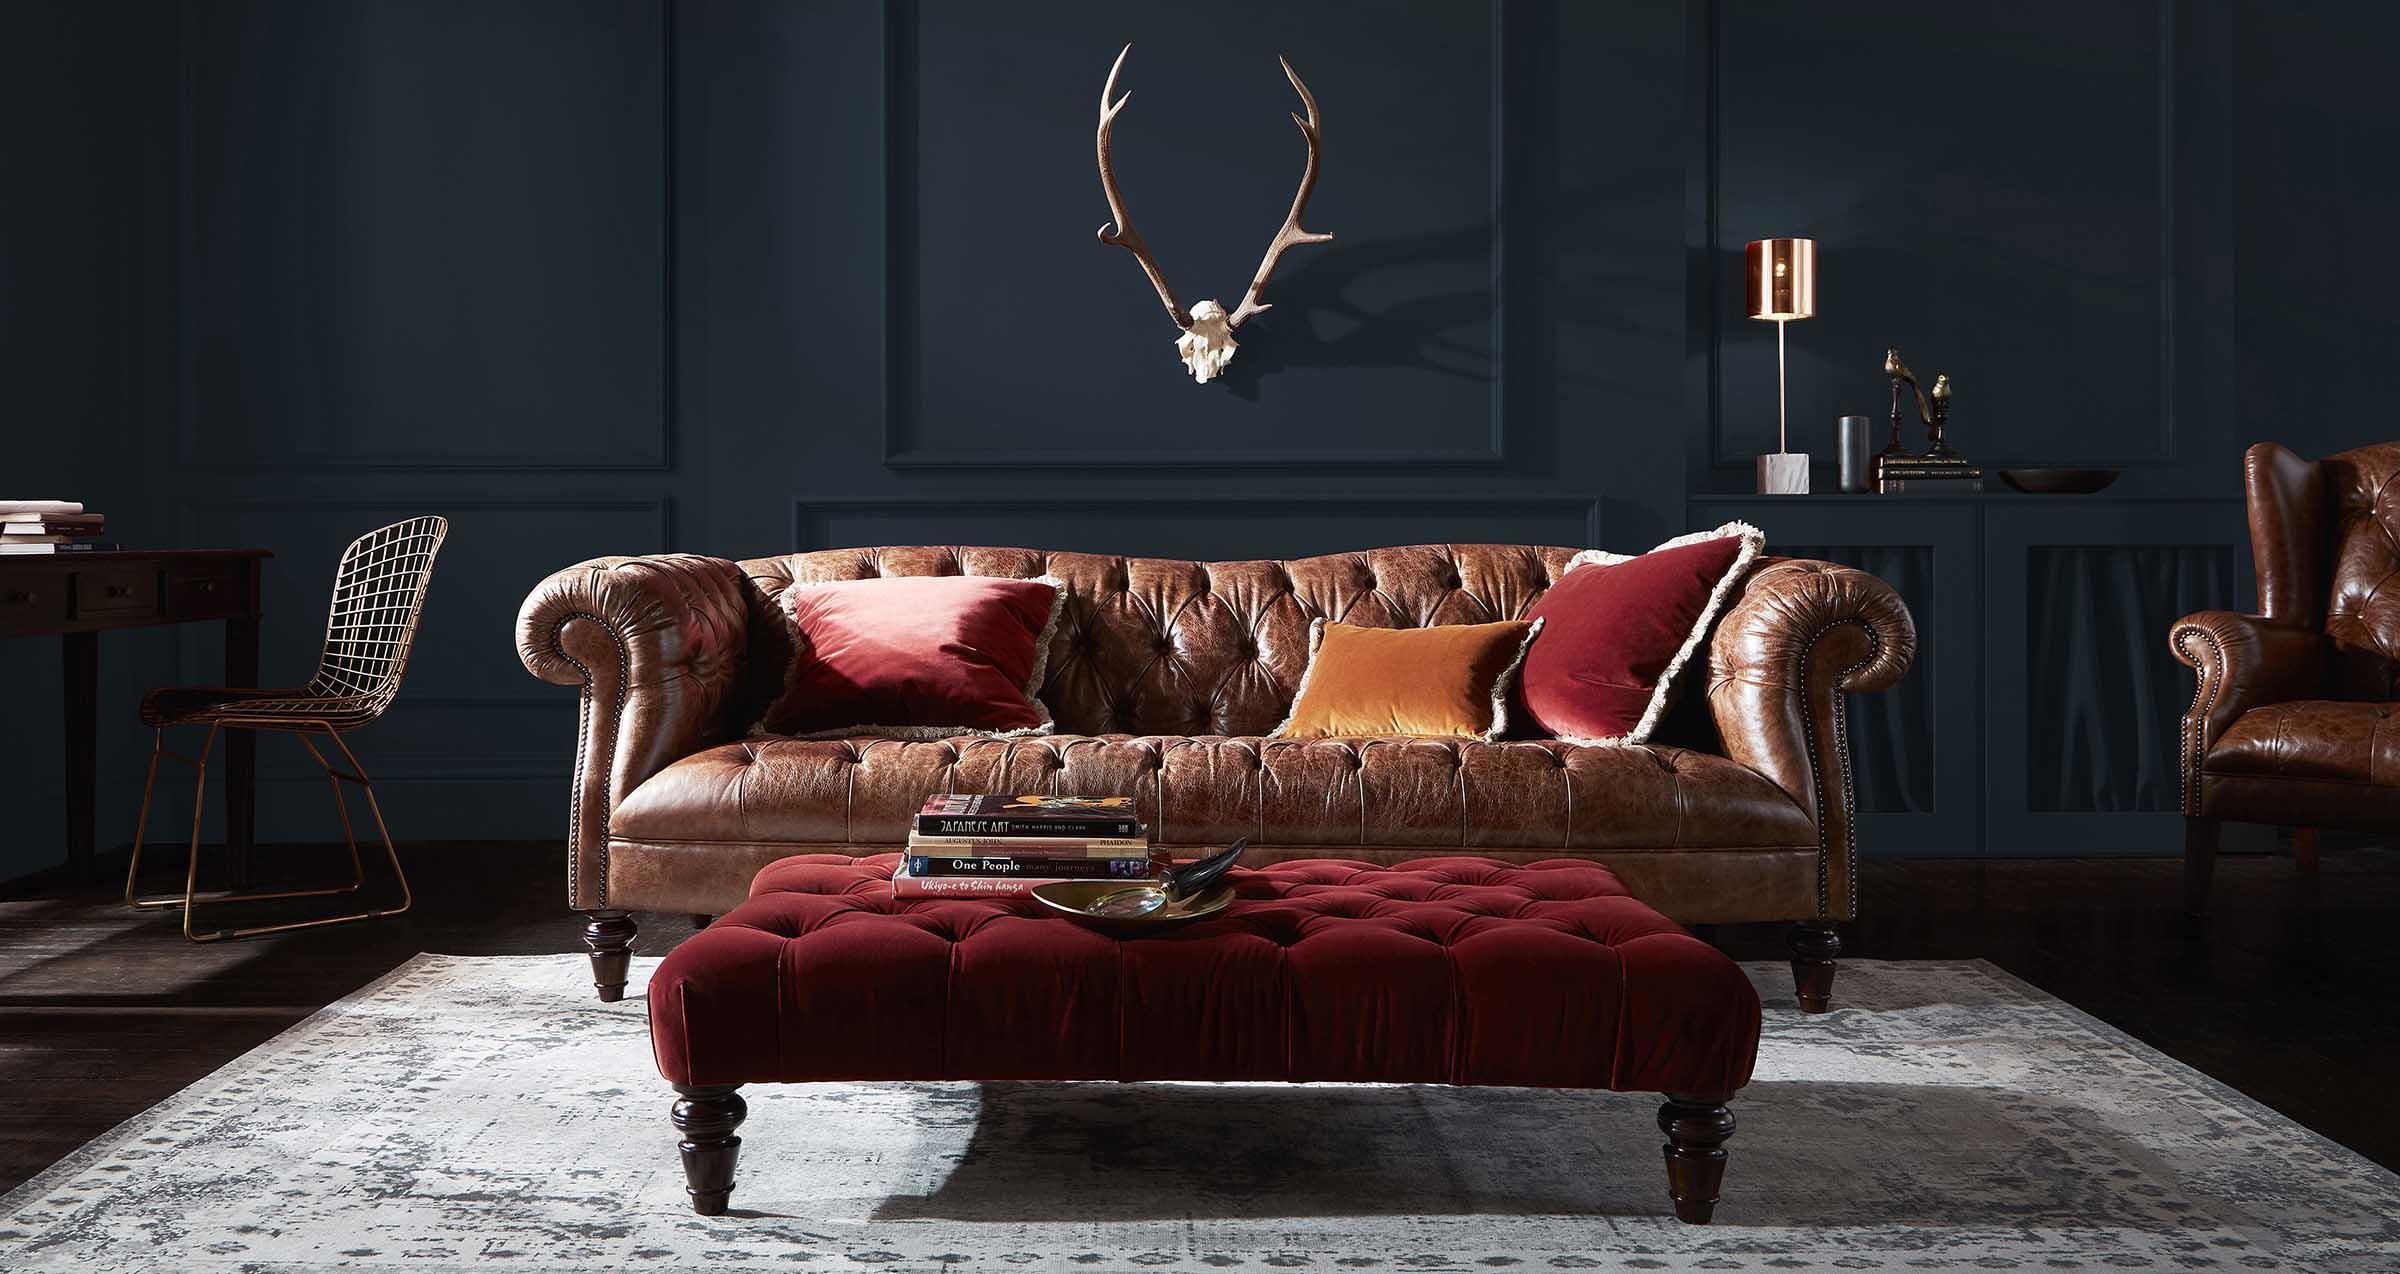 How to decorate a vintage chesterfield sofa